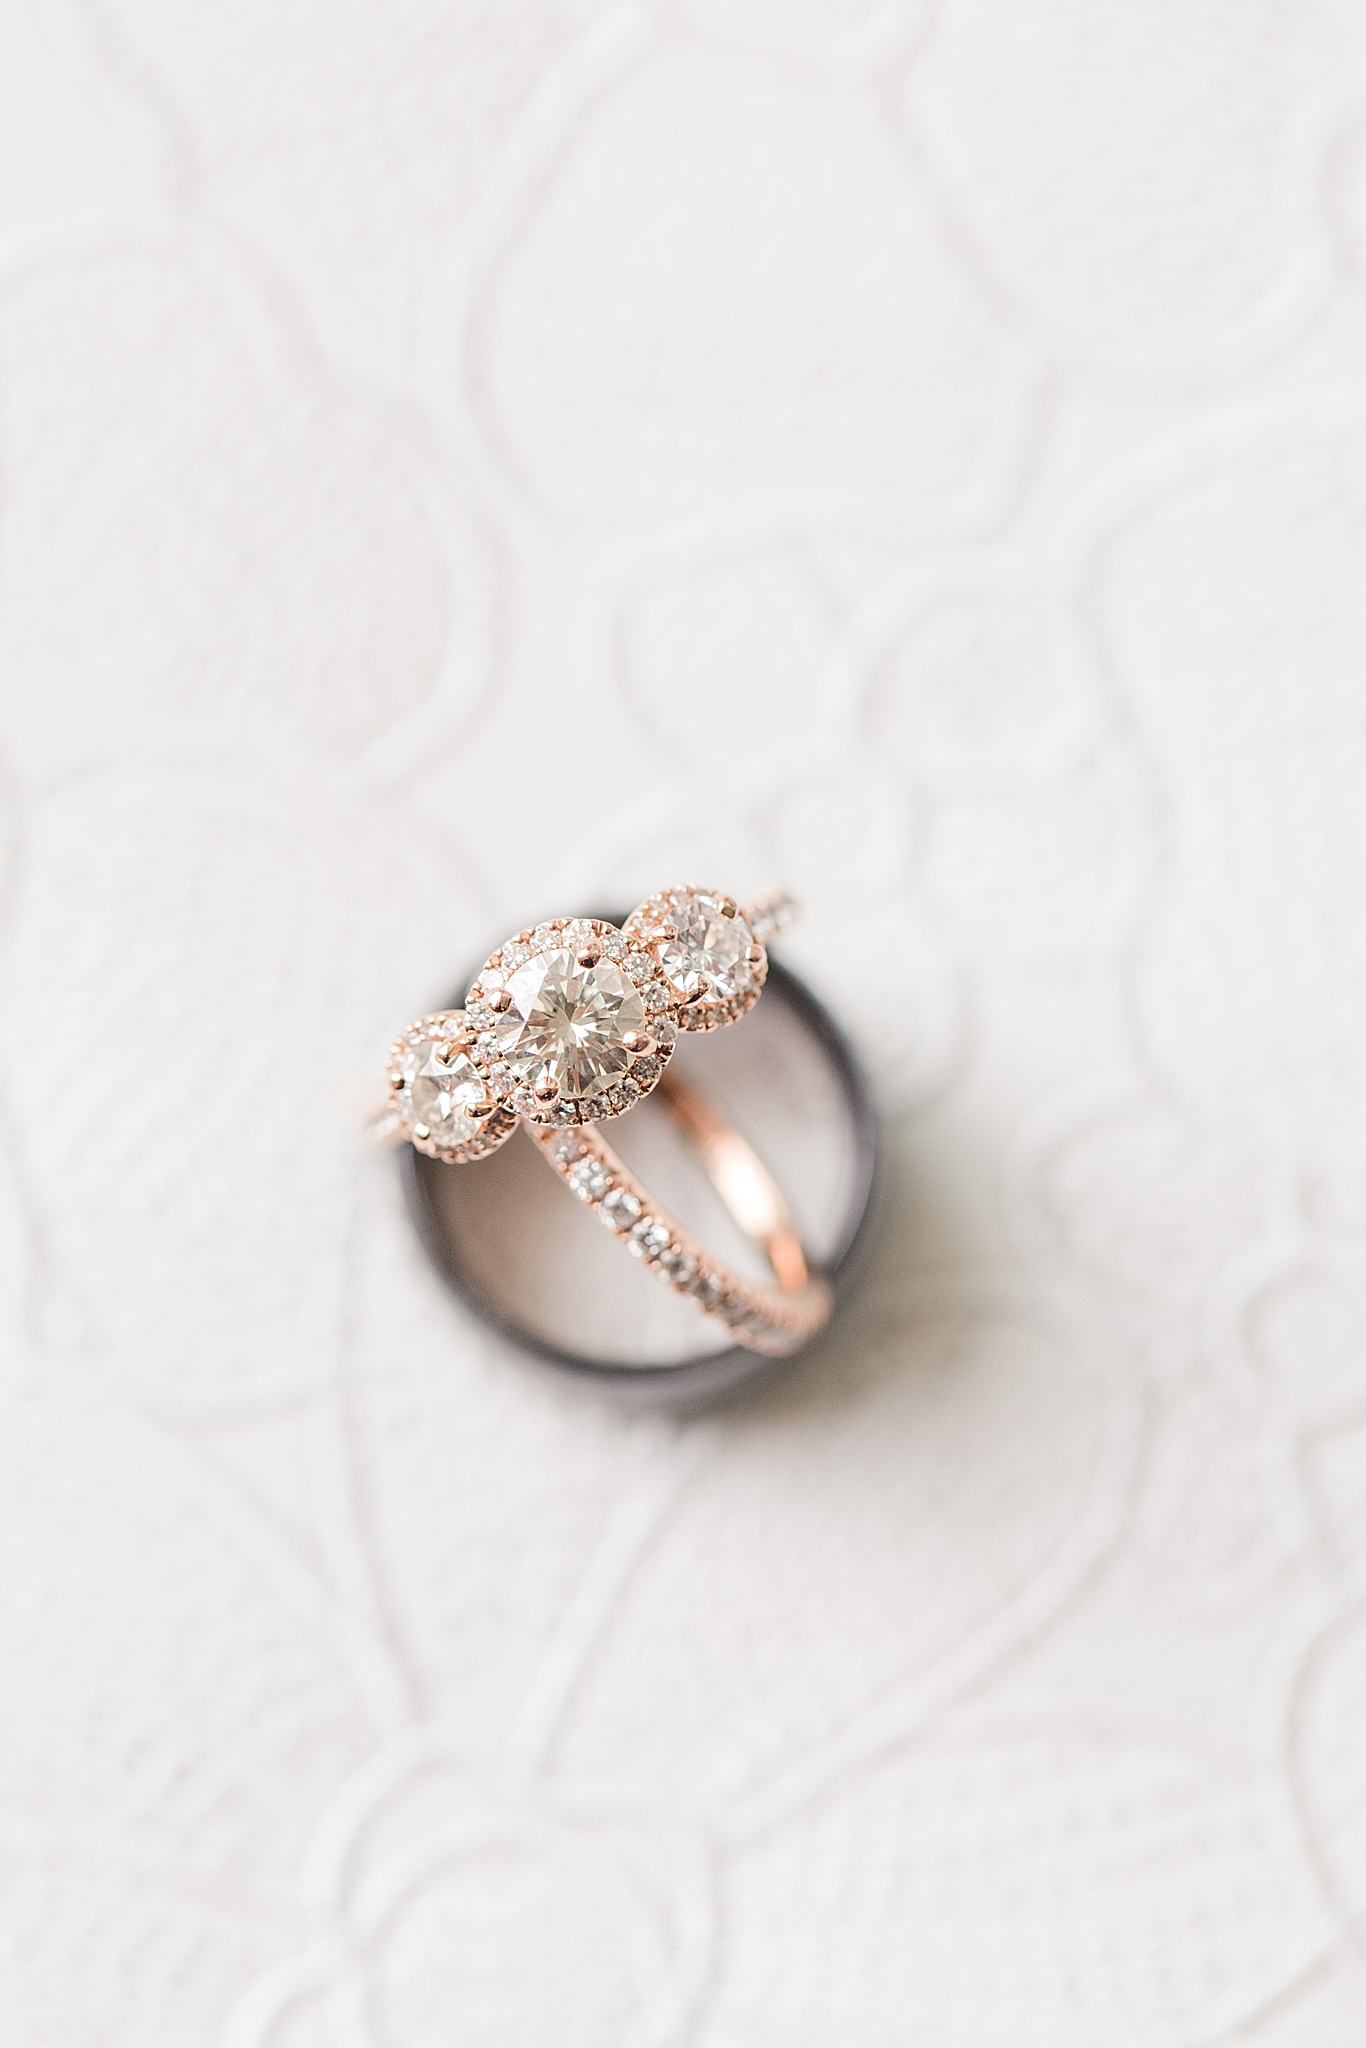 wedding bands sit on lace of wedding gown